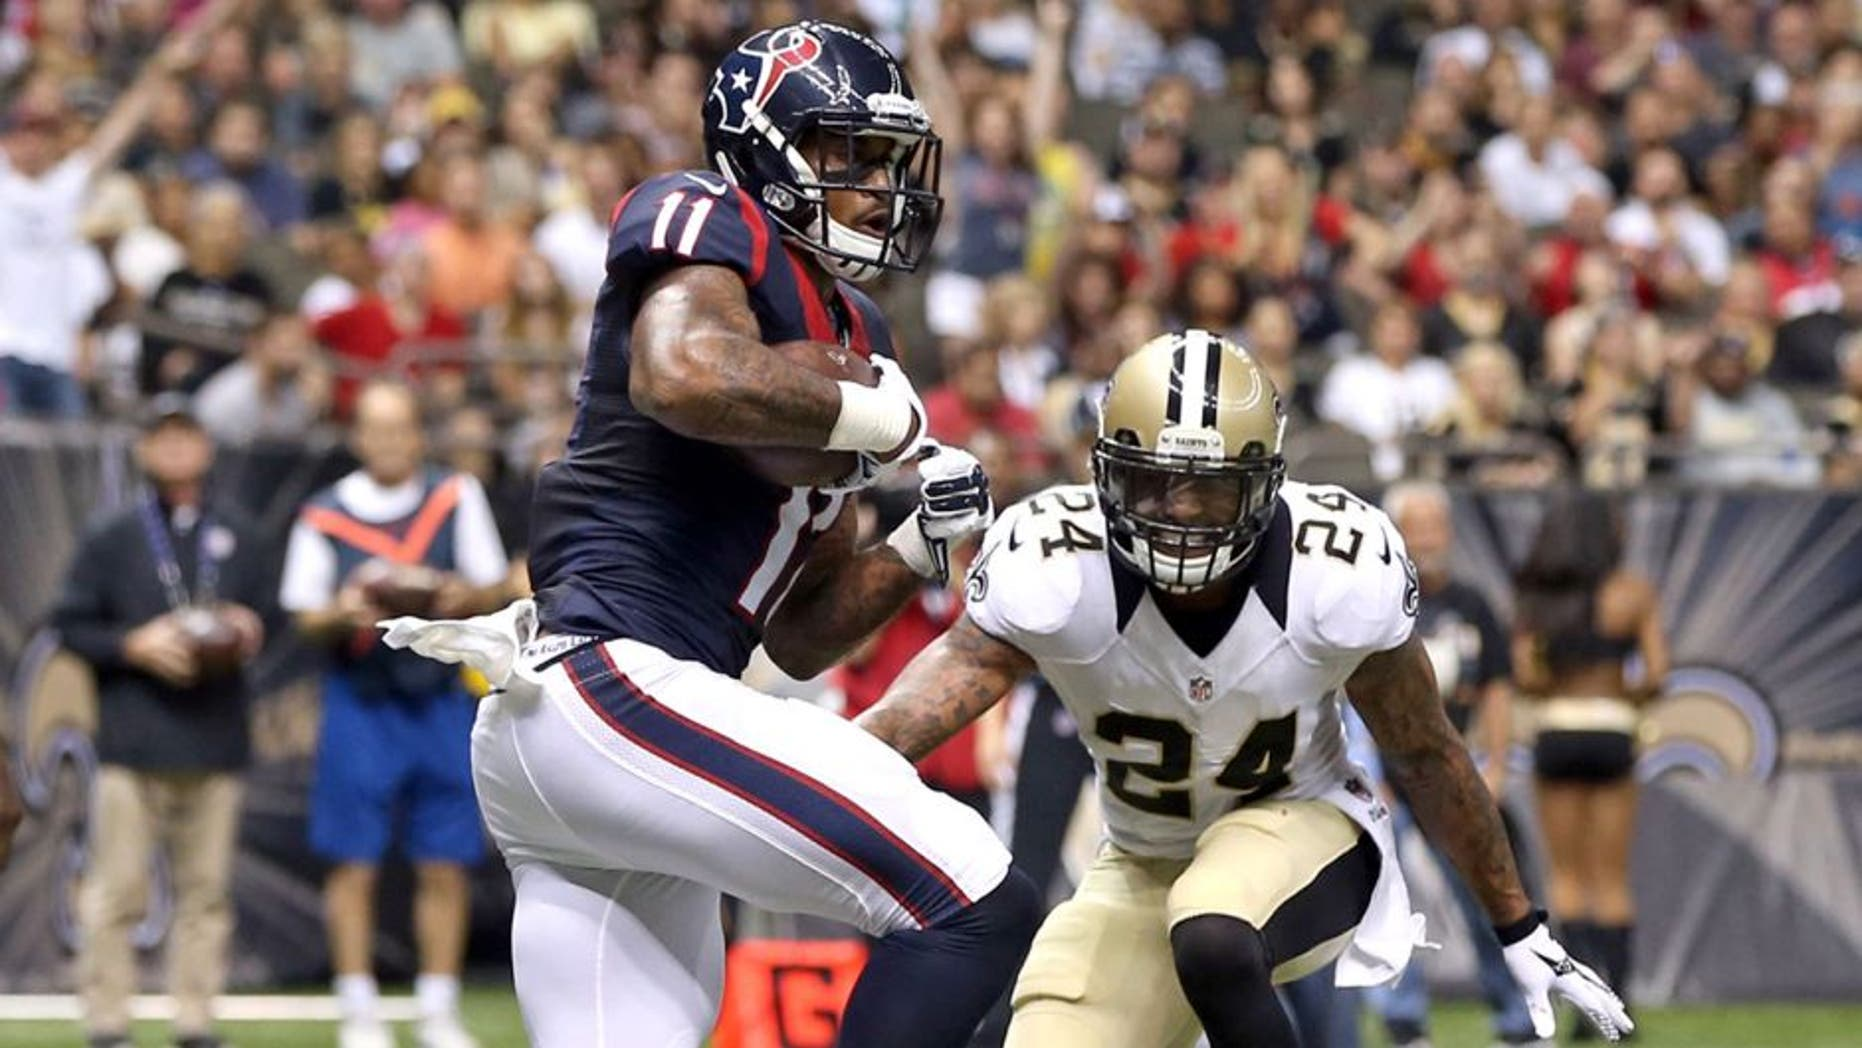 Aug 30, 2015; New Orleans, LA, USA; Houston Texans wide receiver Jaelen Strong (11) scores a touchdown in the second half of their game against the New Orleans Saints at the Mercedes-Benz Superdome. The Texans won, 27-13. Mandatory Credit: Chuck Cook-USA TODAY Sports